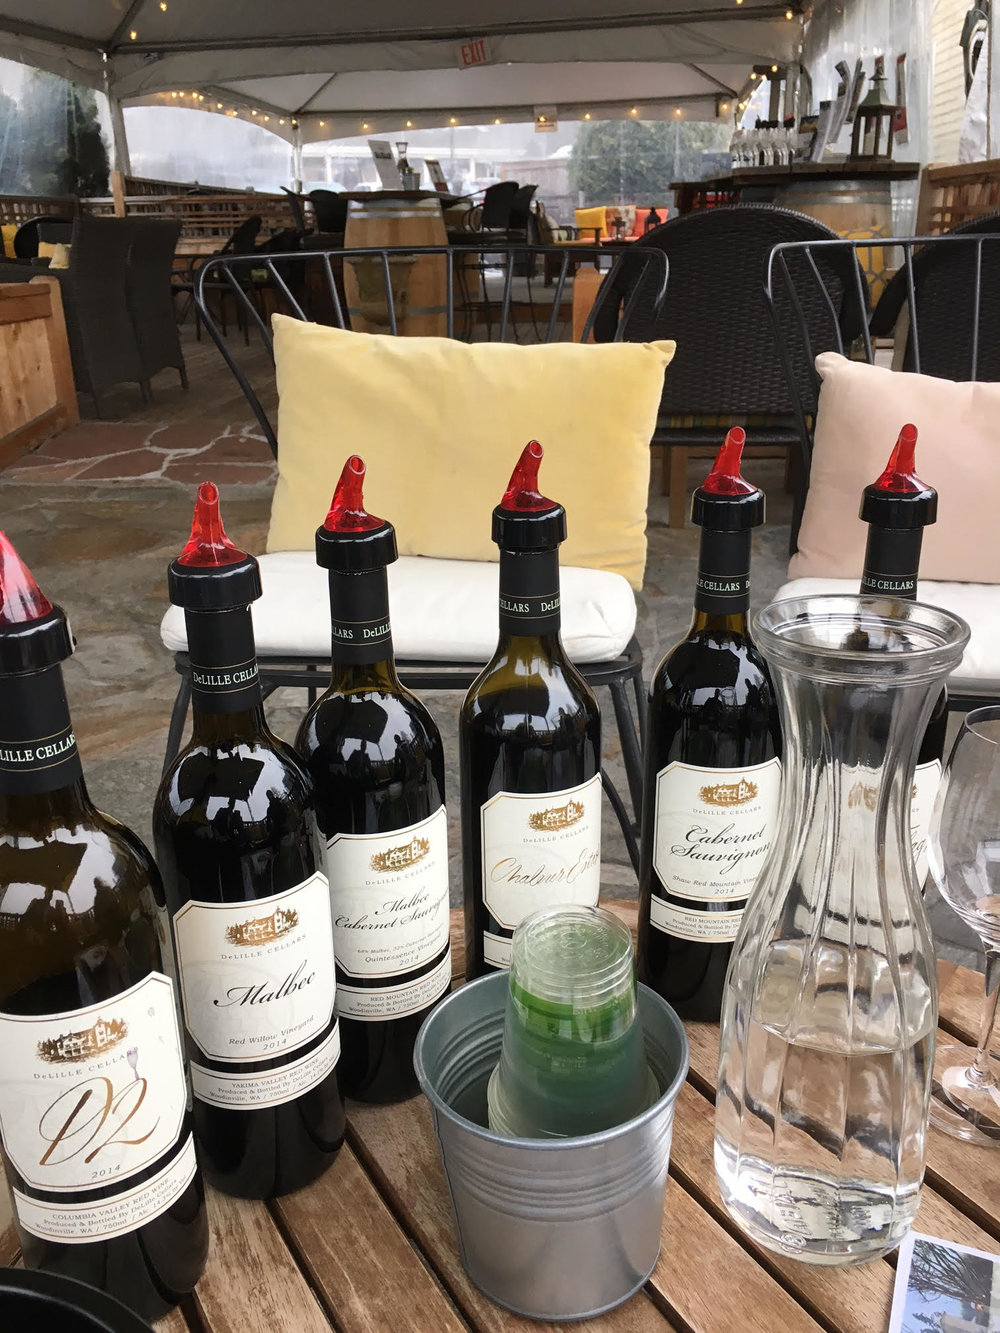 Aweomse new red wine lineup from DeLille Cellars